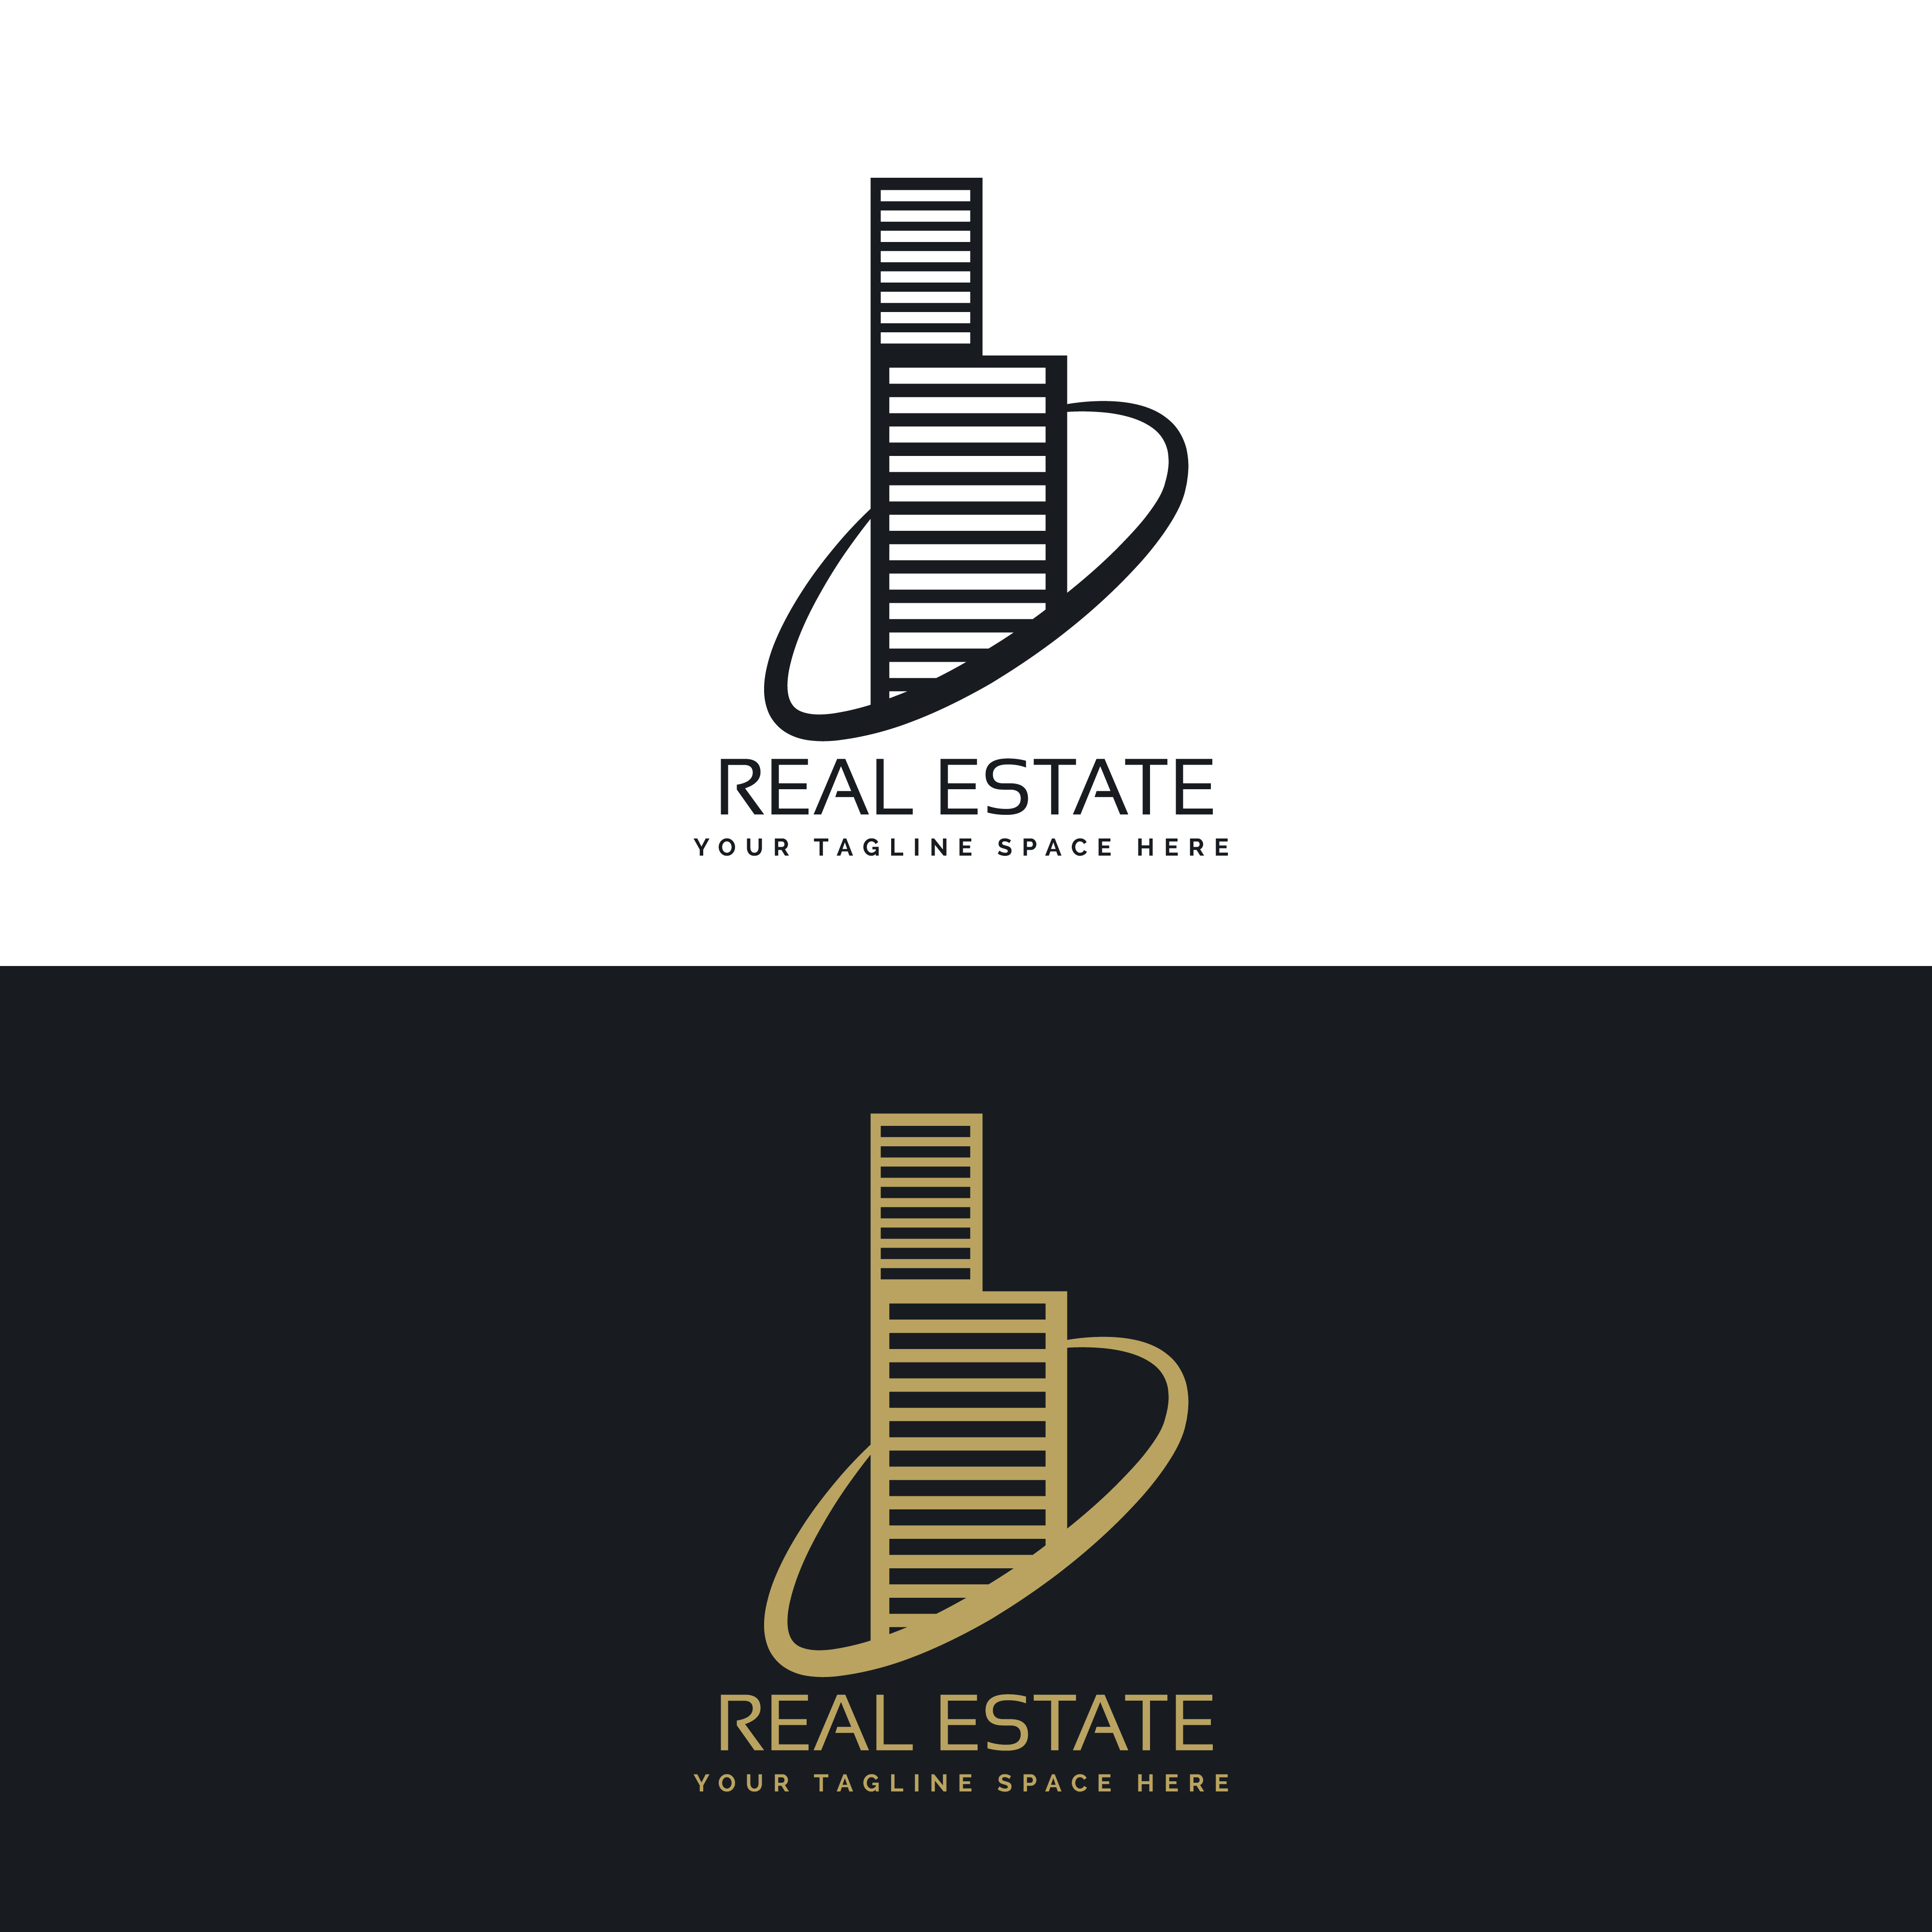 Real Estate Building Business Logo Concept Design Free Vector Art Stock Graphics Images